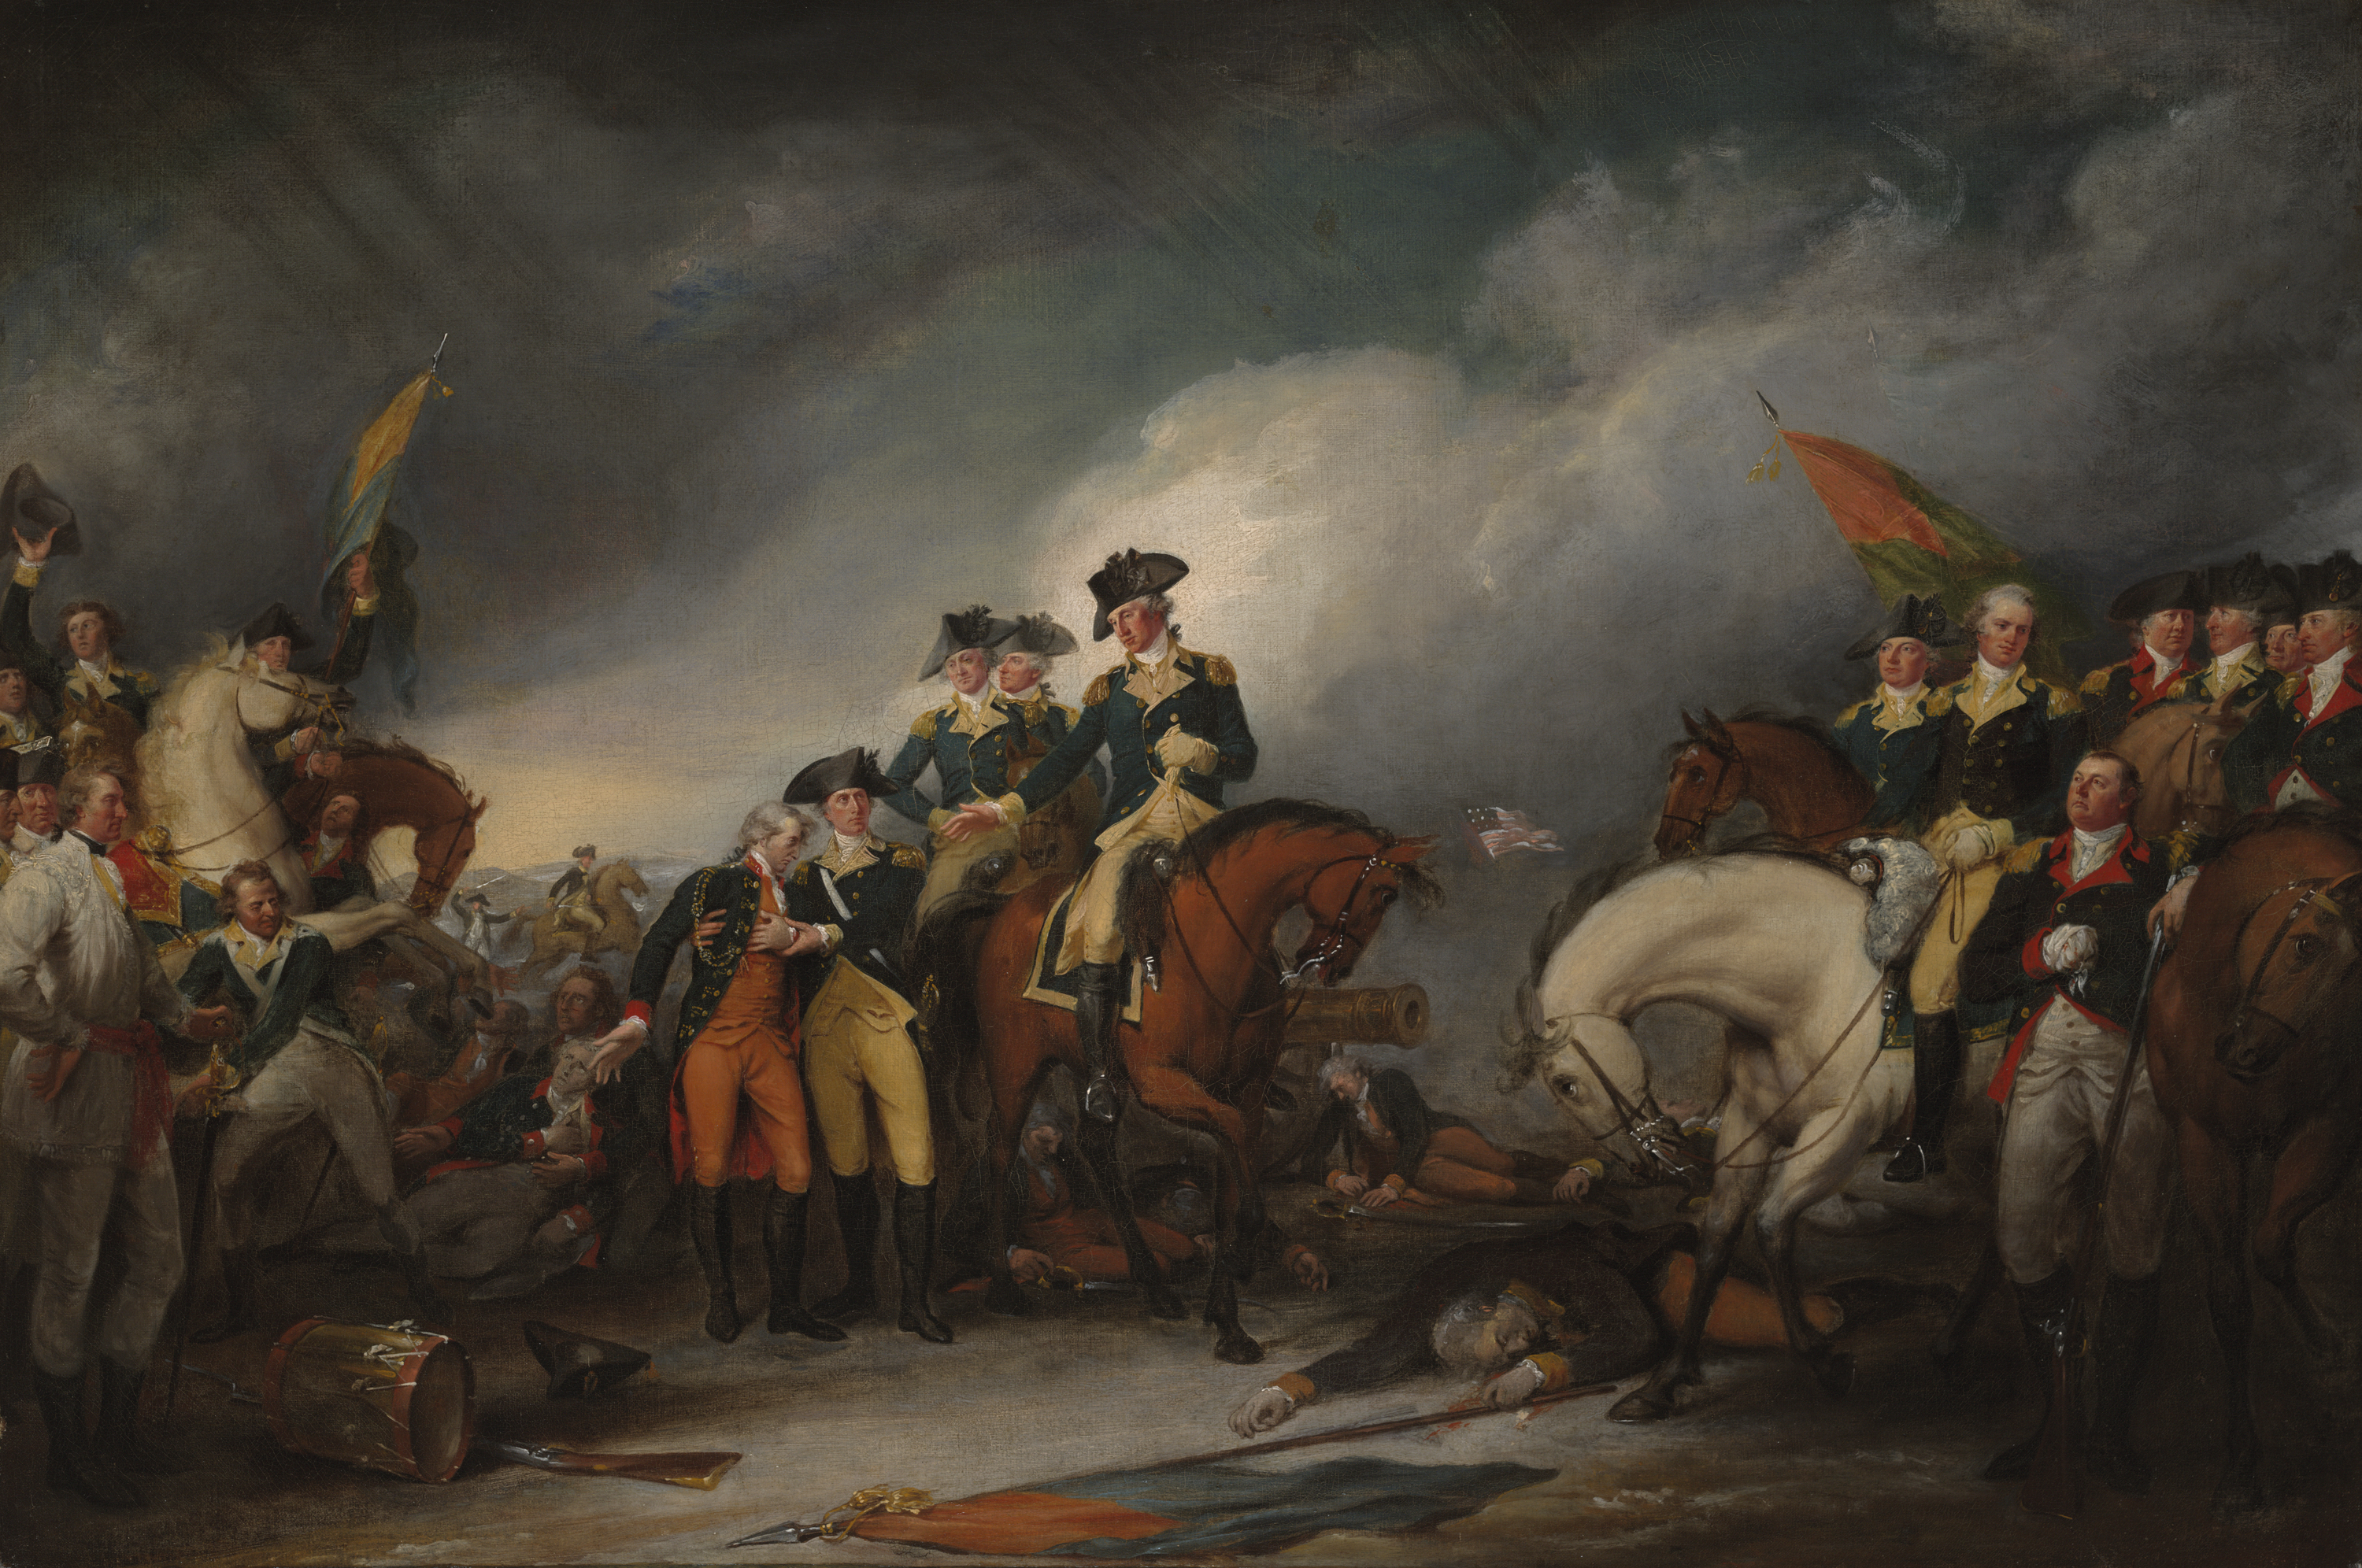 The Capture of the Hessians at Trenton, December 26, 1776 by John Trumbull